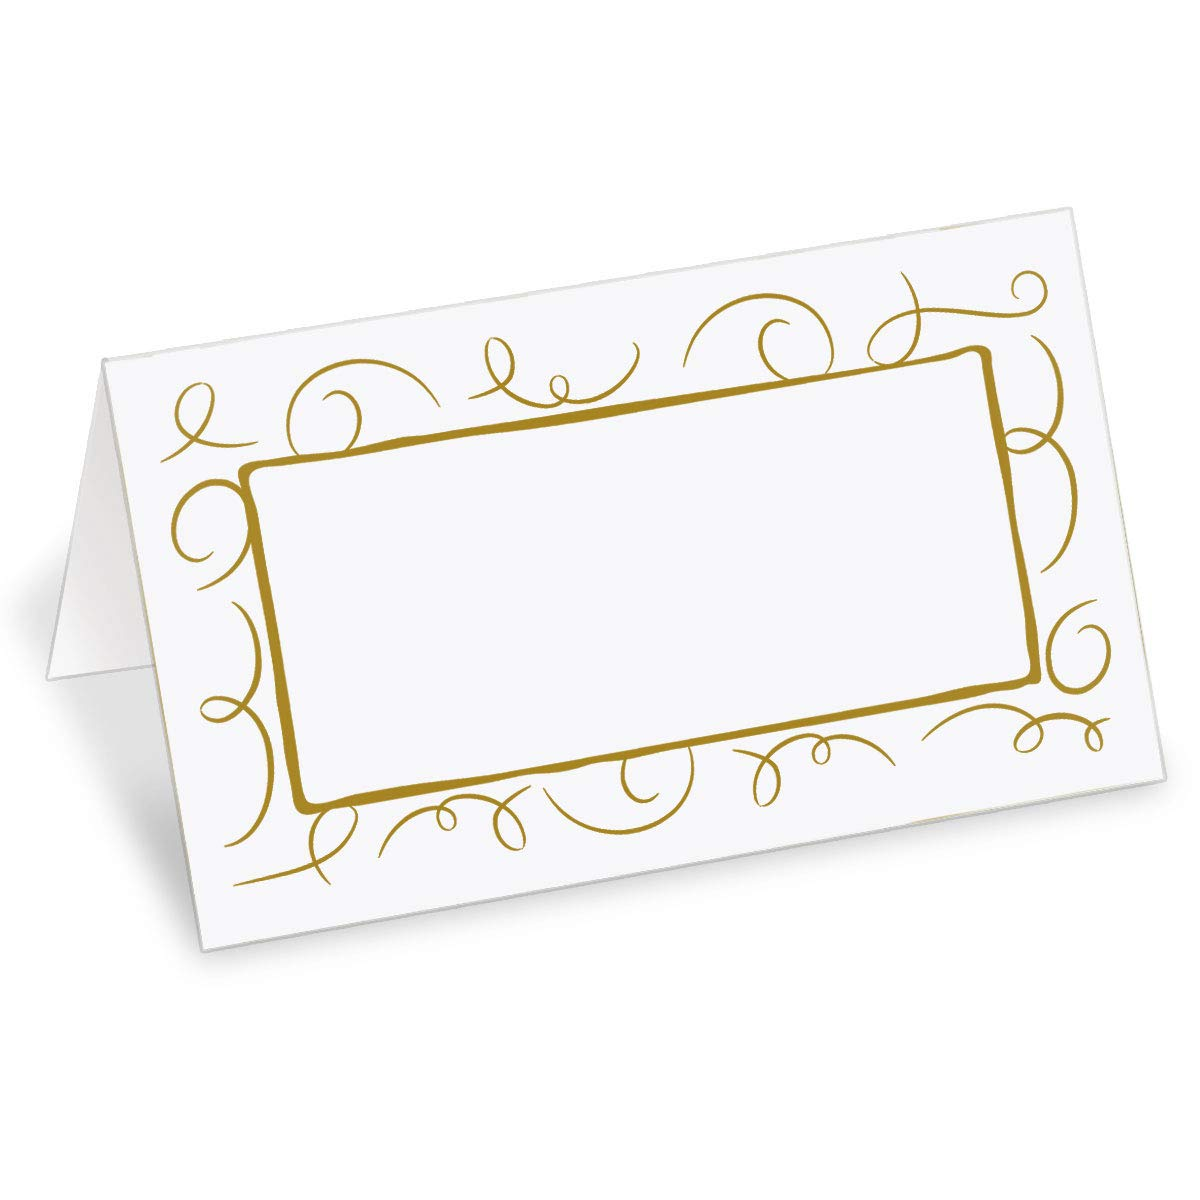 PaperDirect White 38lb Cover Stock Place Cards, Filigree Gold Foil Border, Micro-Perforated, 2'' x 3 1/2'', 200/box, Laser and Inkjet Compatible by PaperDirect